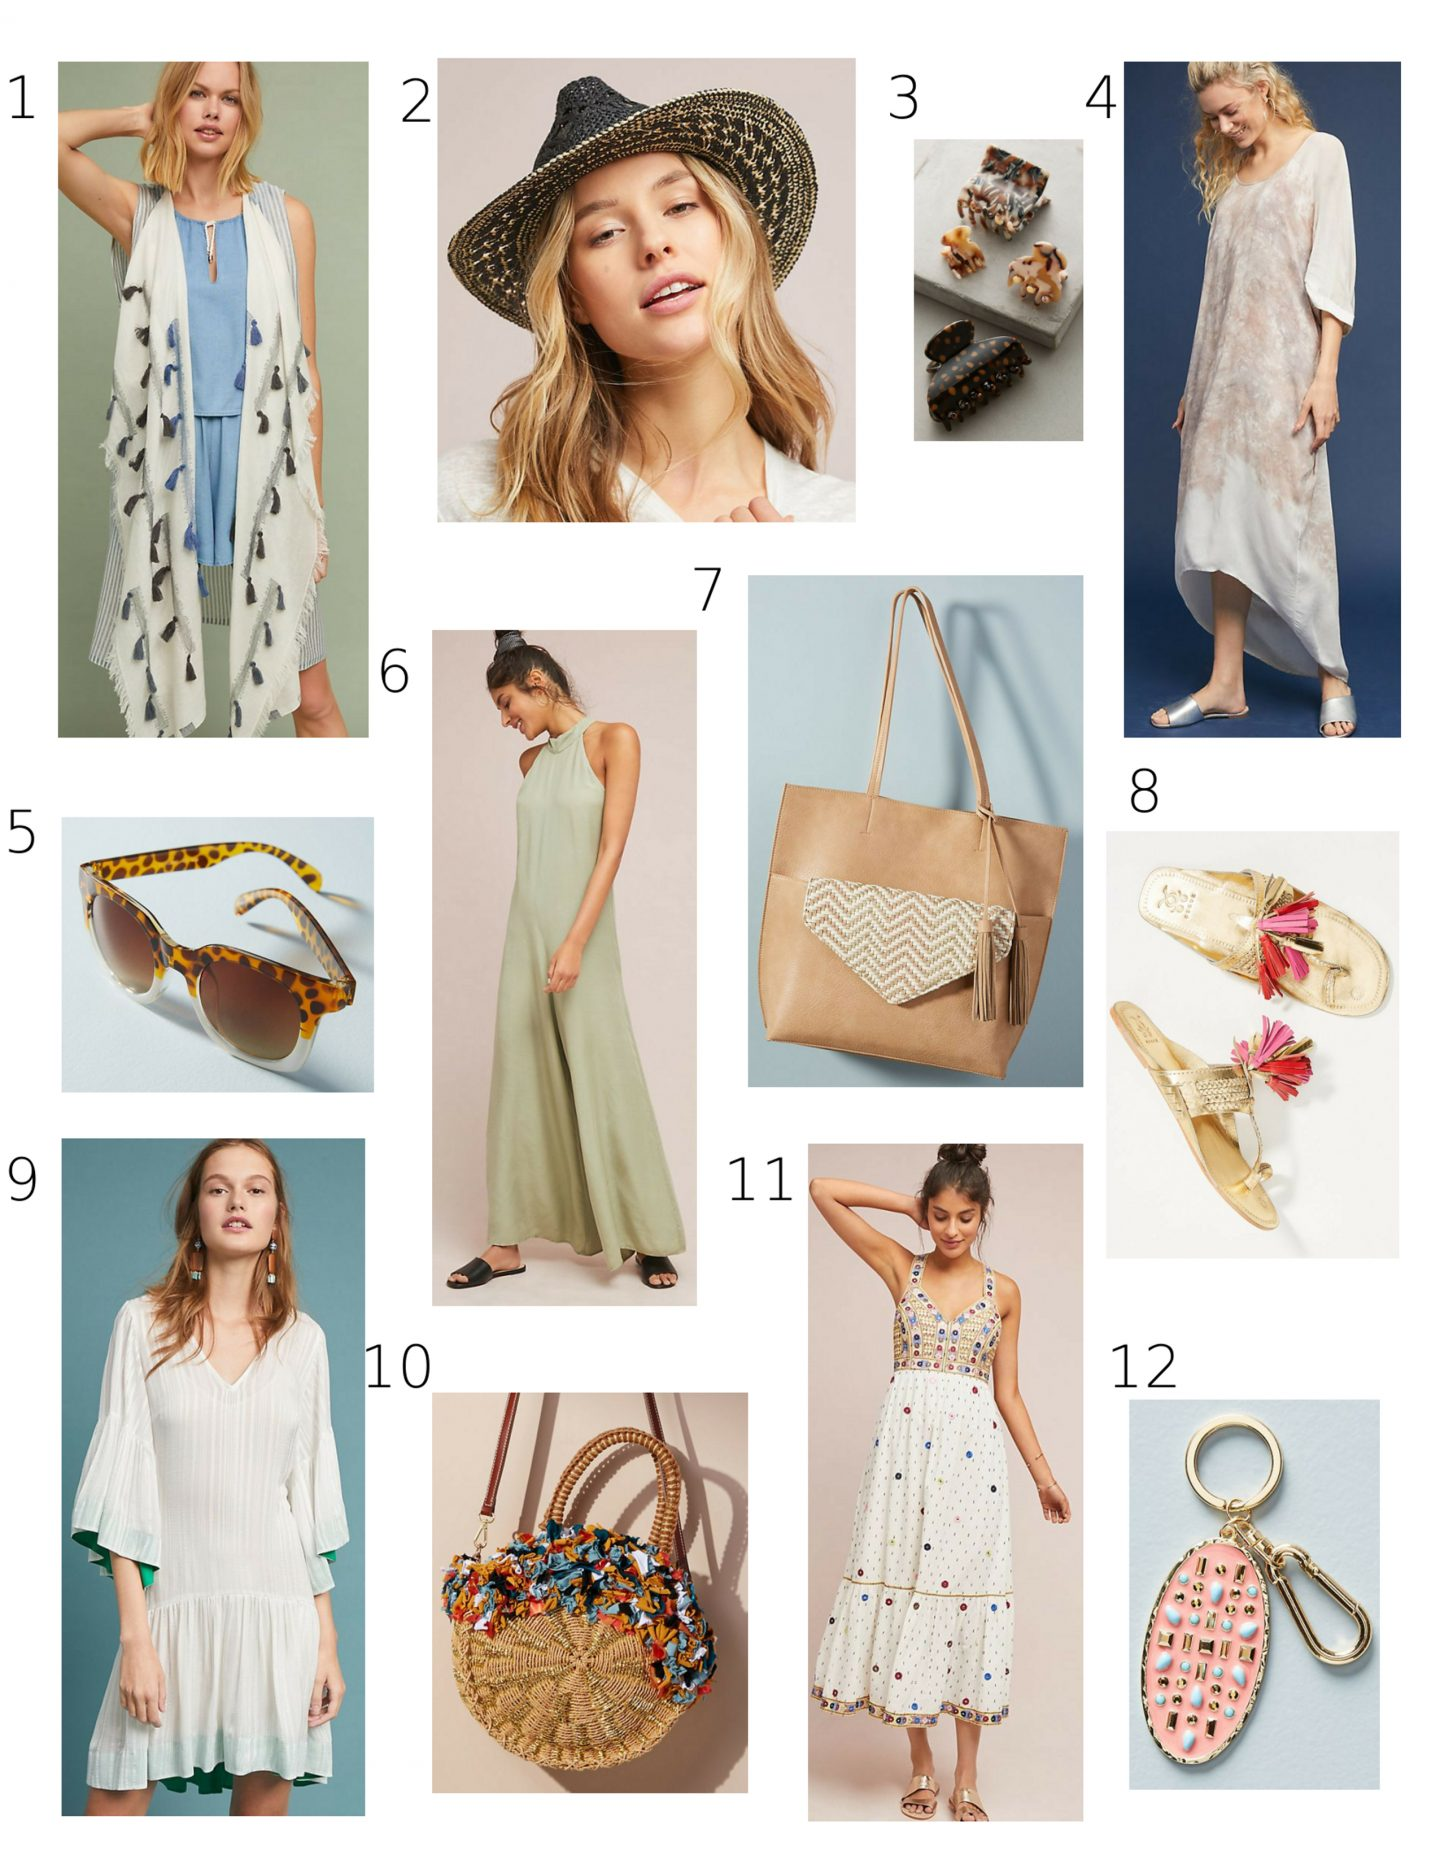 anthropologie sale items